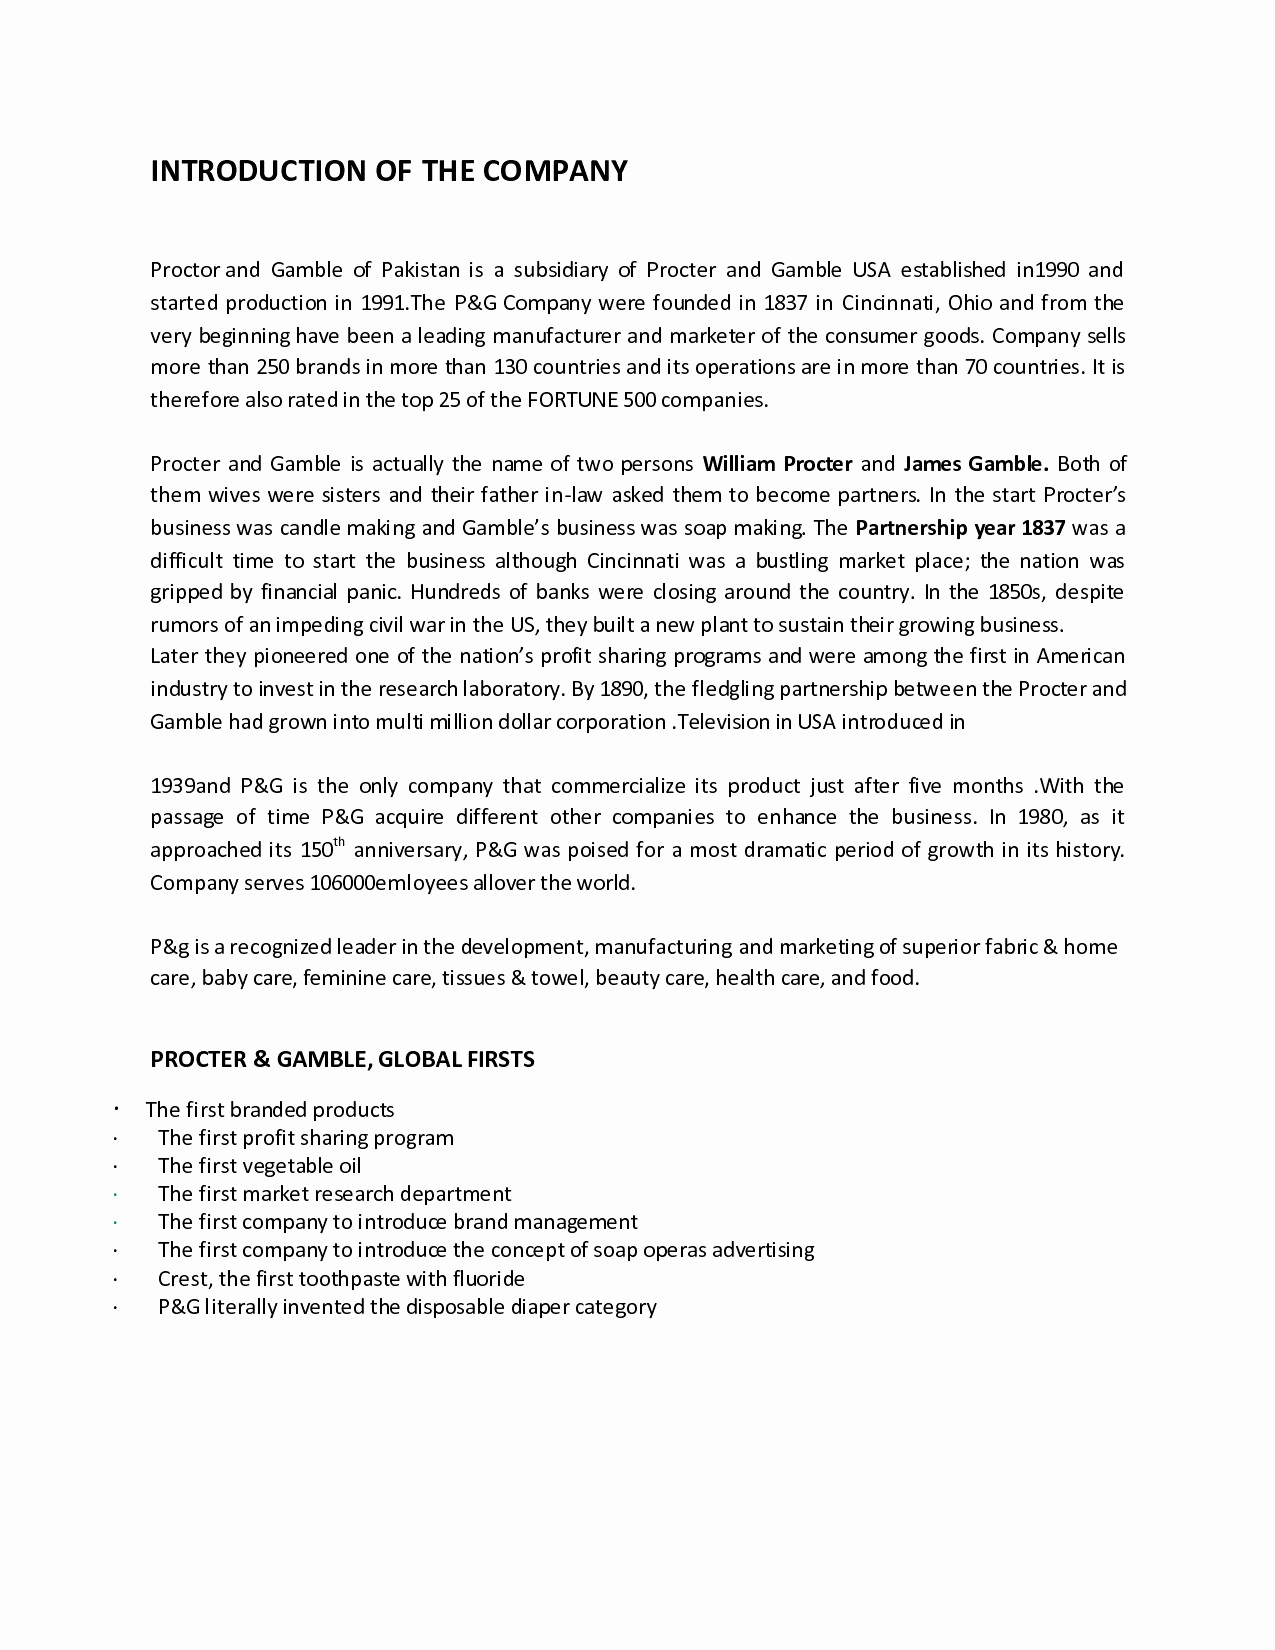 Draft Cover Letter Template - the Cover Letter Information My Cover Letters Classic Blue Cover